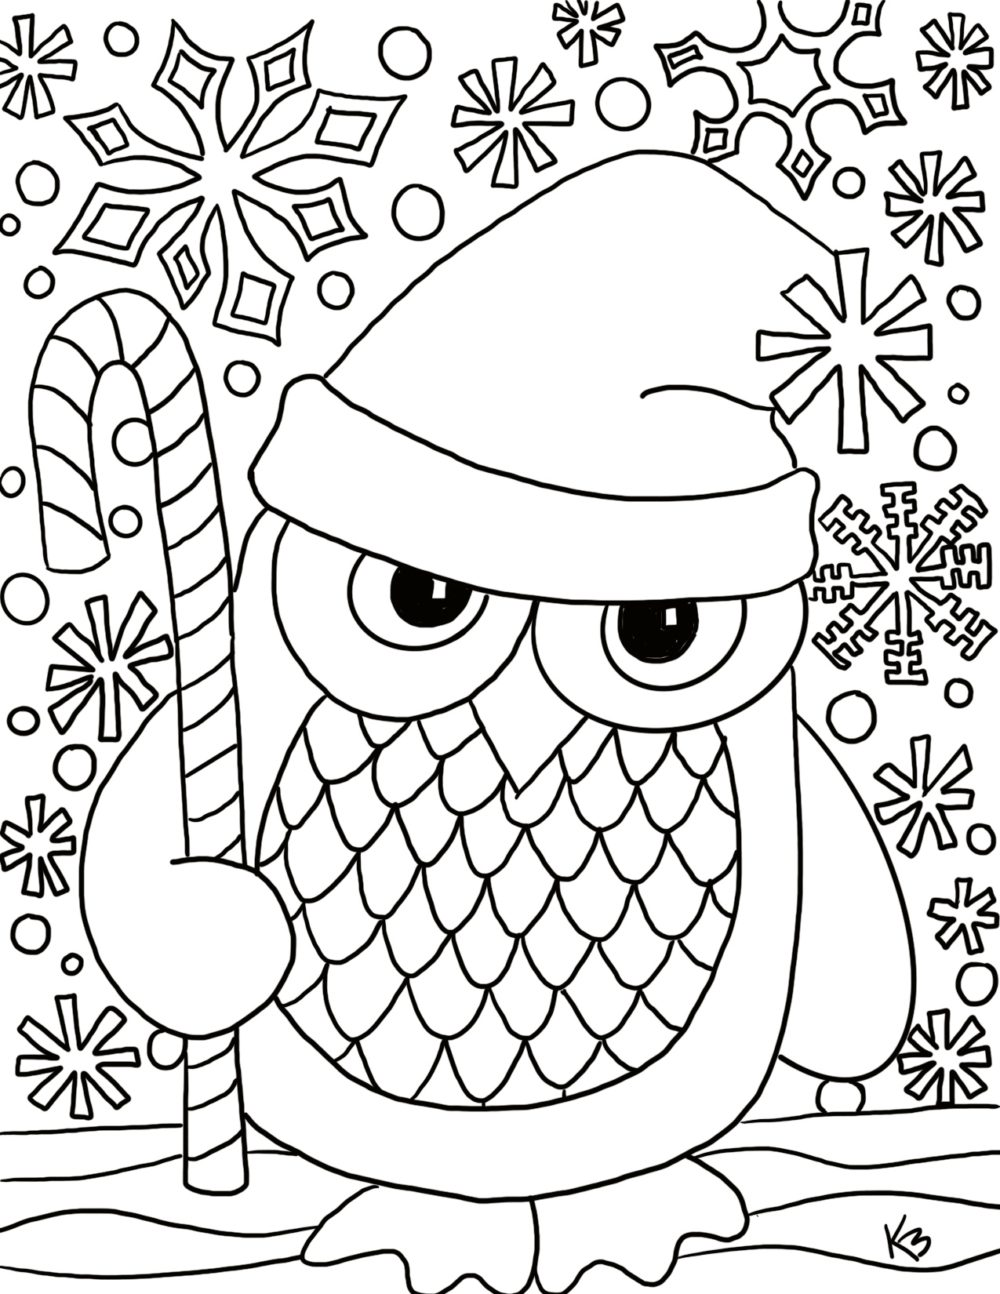 How To Draw Santa Claus Face - How to Wiki 89   1294x1000